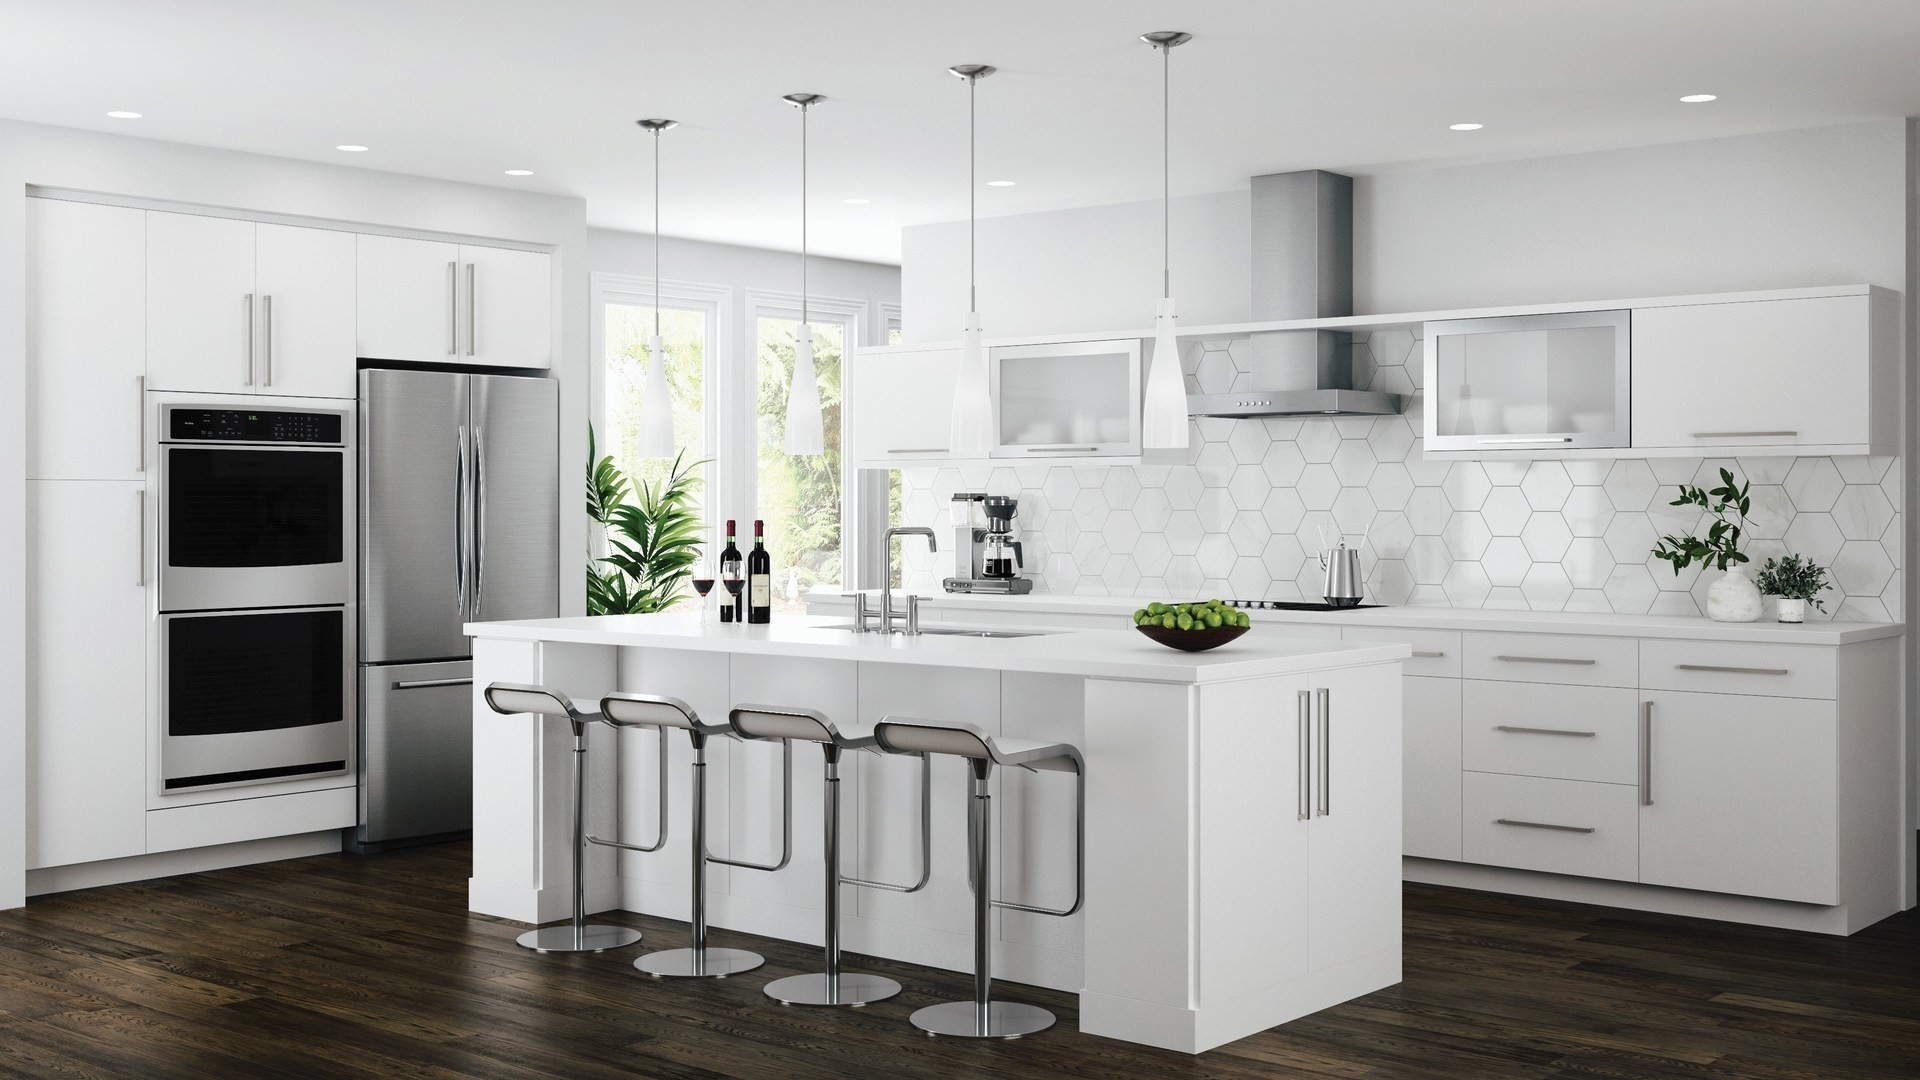 edgeley base cabinets in white